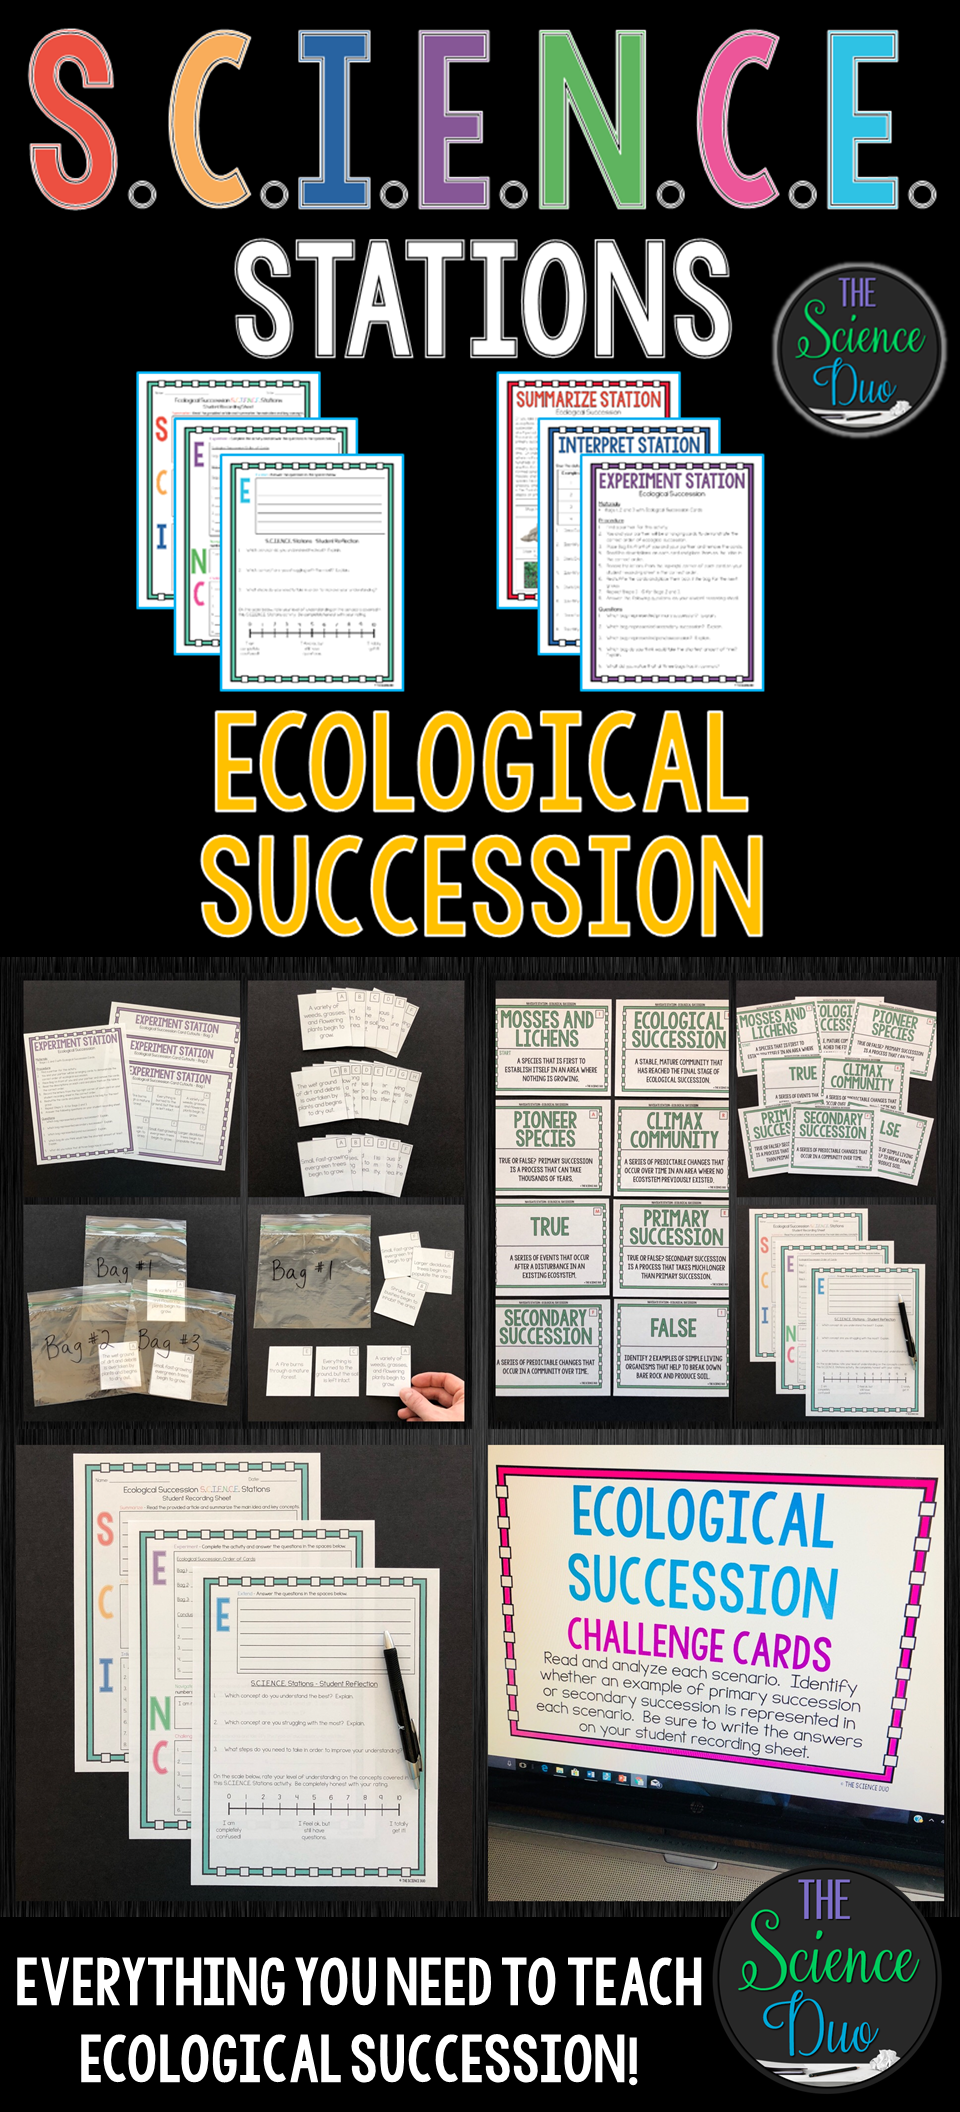 worksheet Ecological Succession Worksheet Middle School ecological succession s c i e n stations this station activity includes activities covering the stages of primary and secondary succession